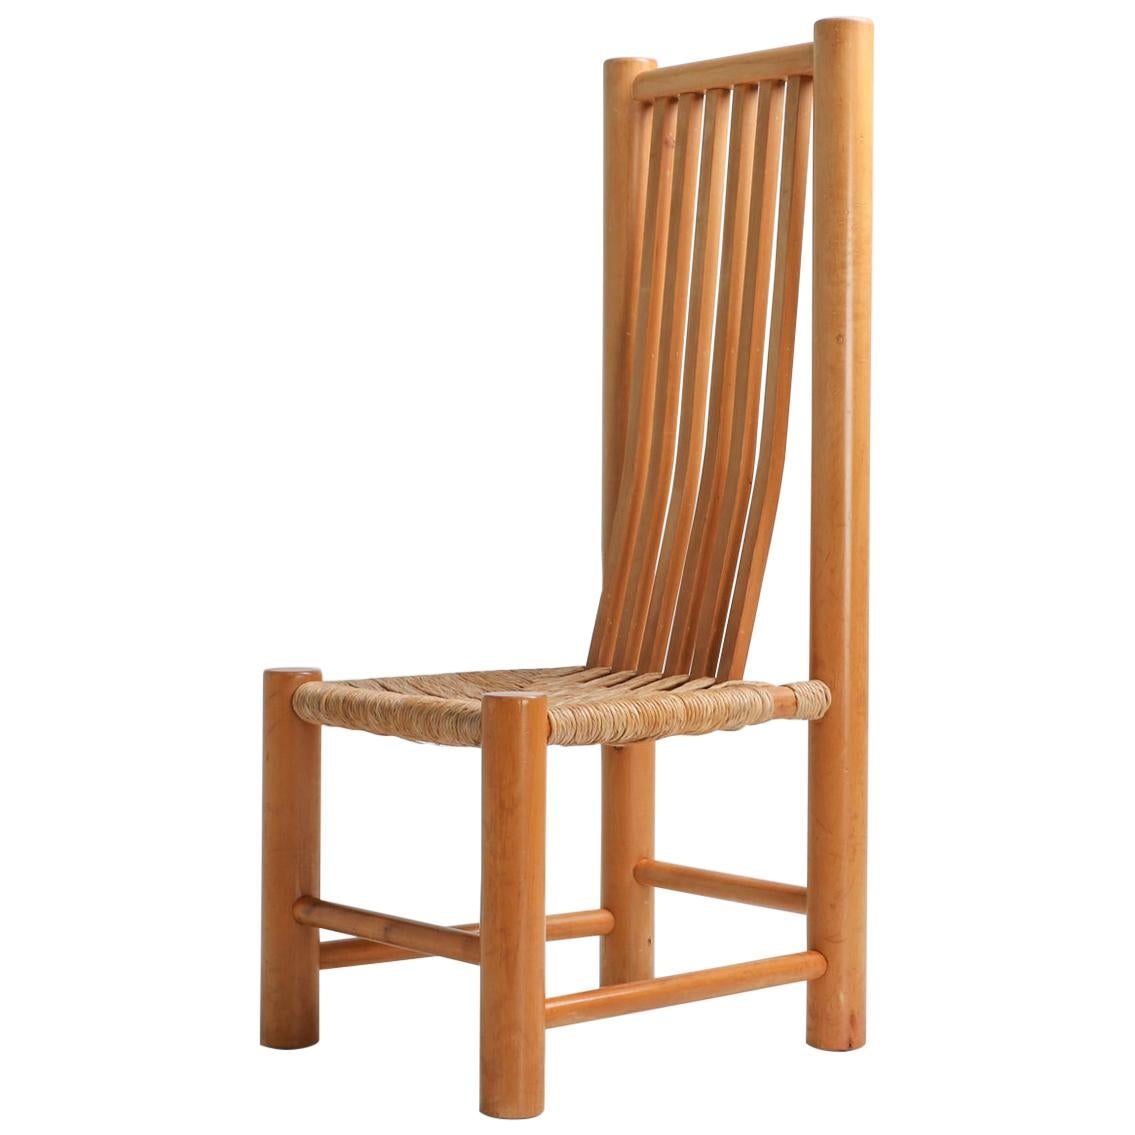 French Elm and Cord Chairs